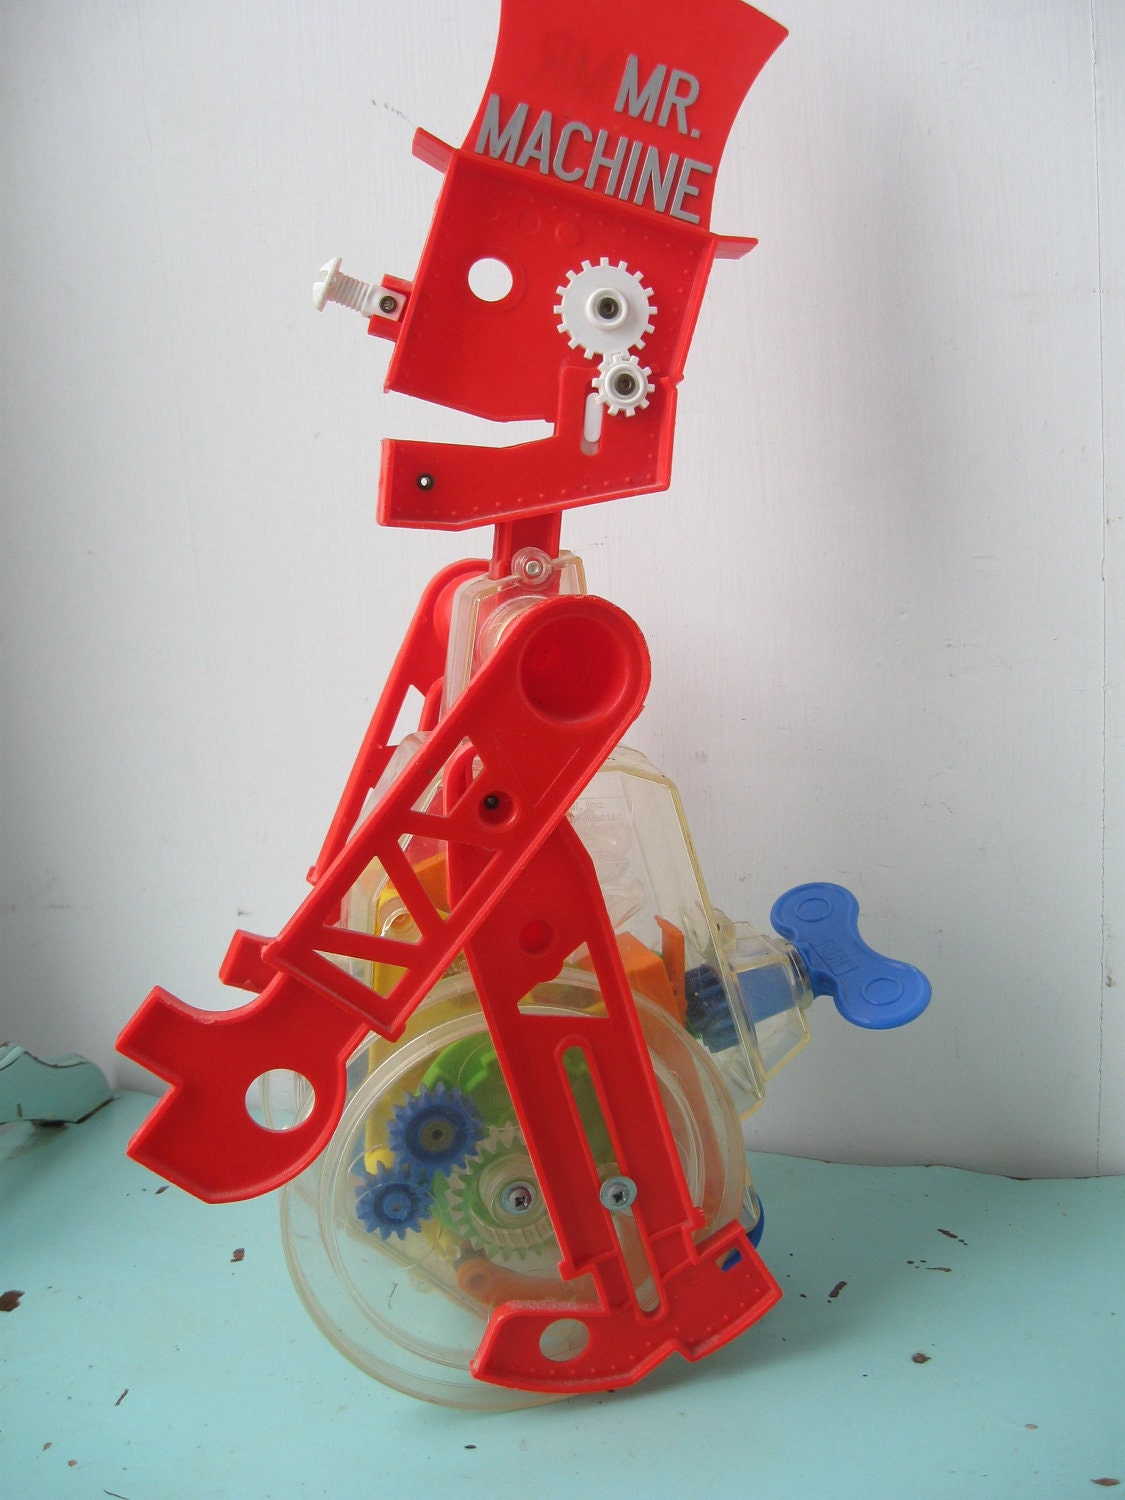 Vintage Toys From The 60s : Vintage mr machine robot wind up toy s